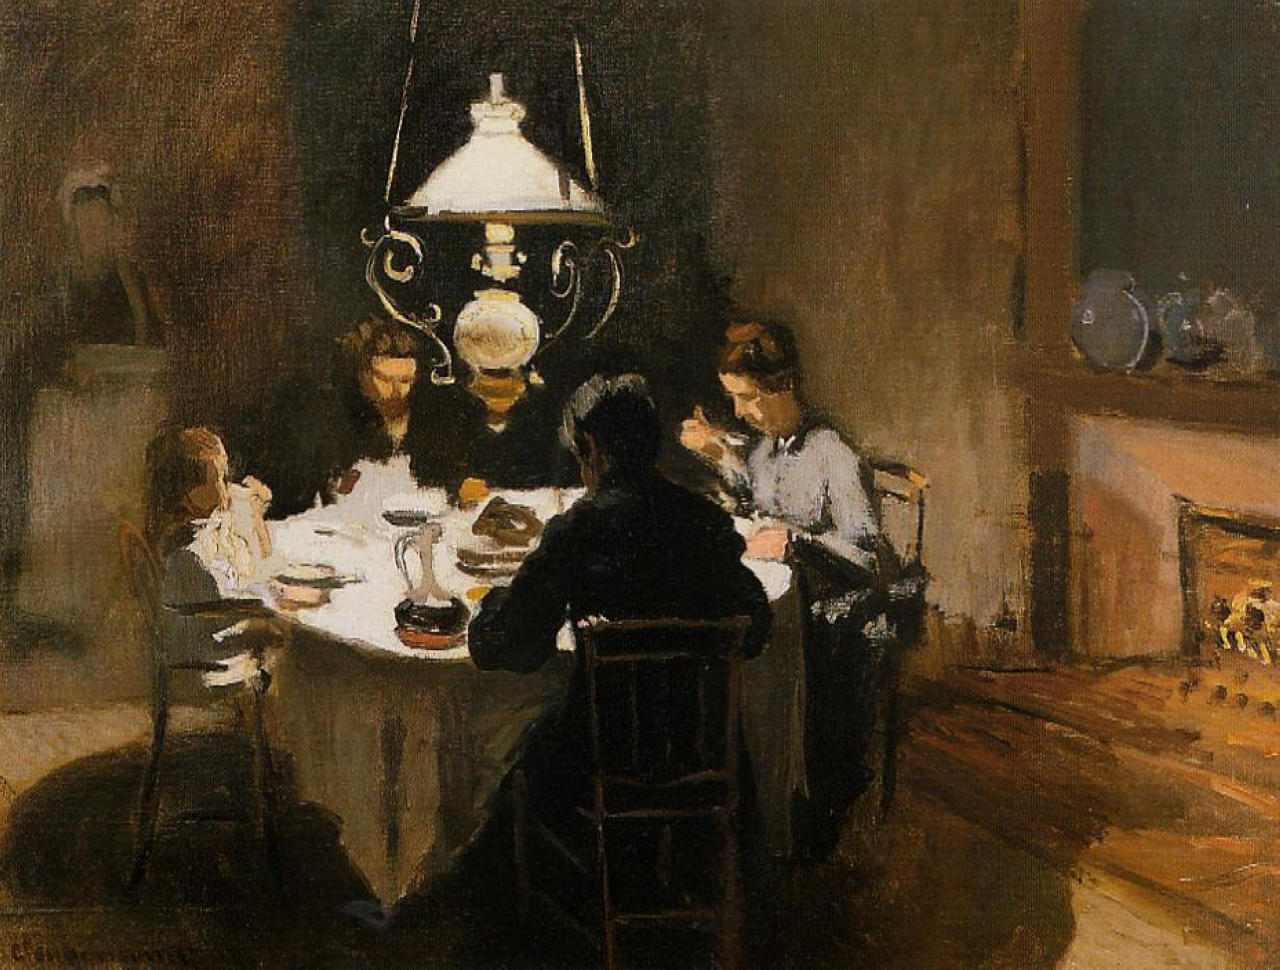 Claude Monet - The Dinner 1869